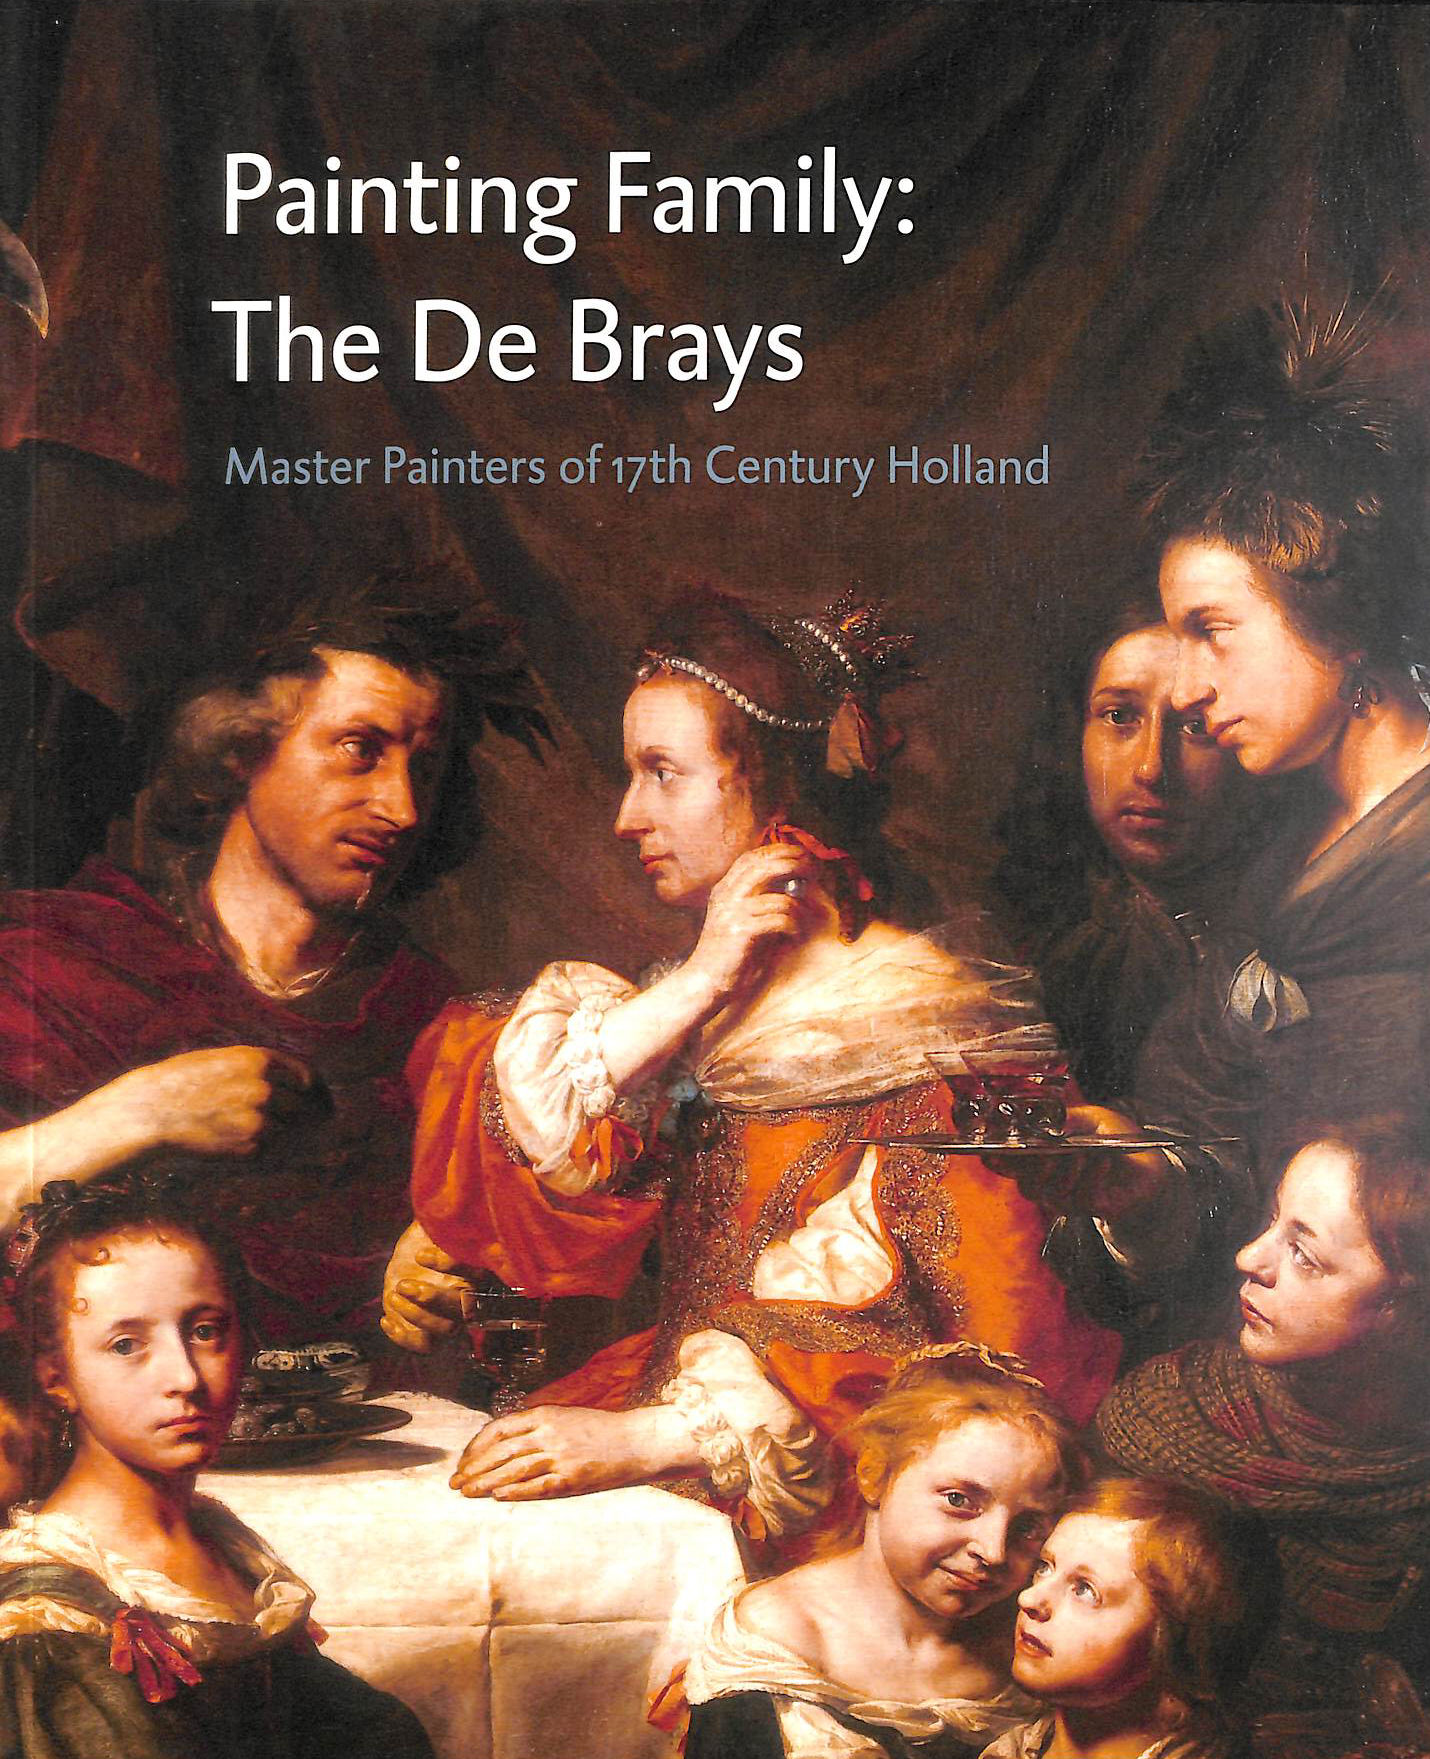 Image for Painting Family: The De Brays, Master Painters of 17th Century Holland.